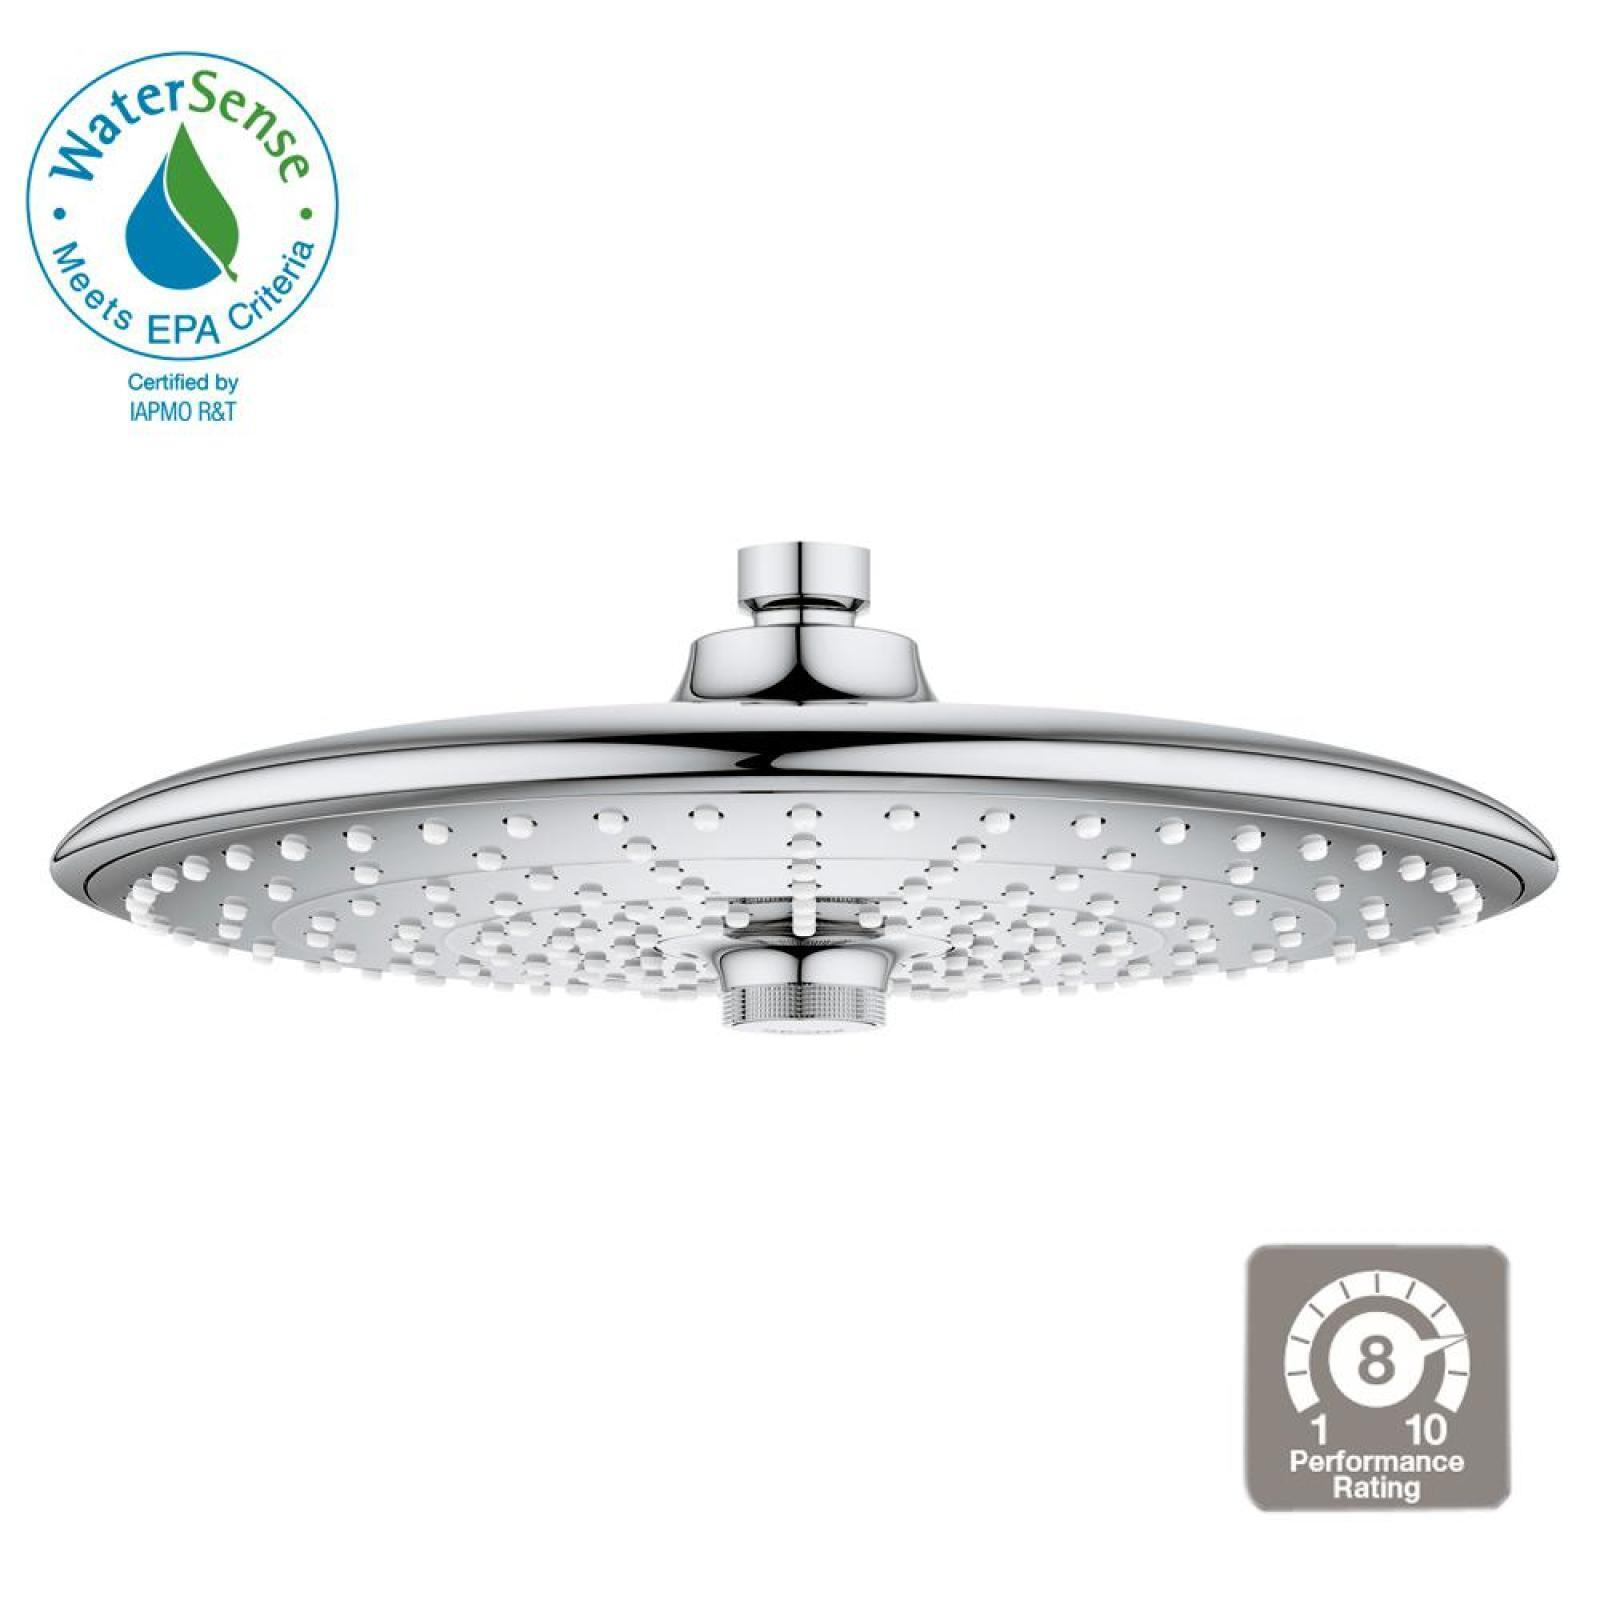 Details About Grohe 3 Spray 10 In Fixed Shower Head In Chrome Rainshower Self Cleaning Stylish